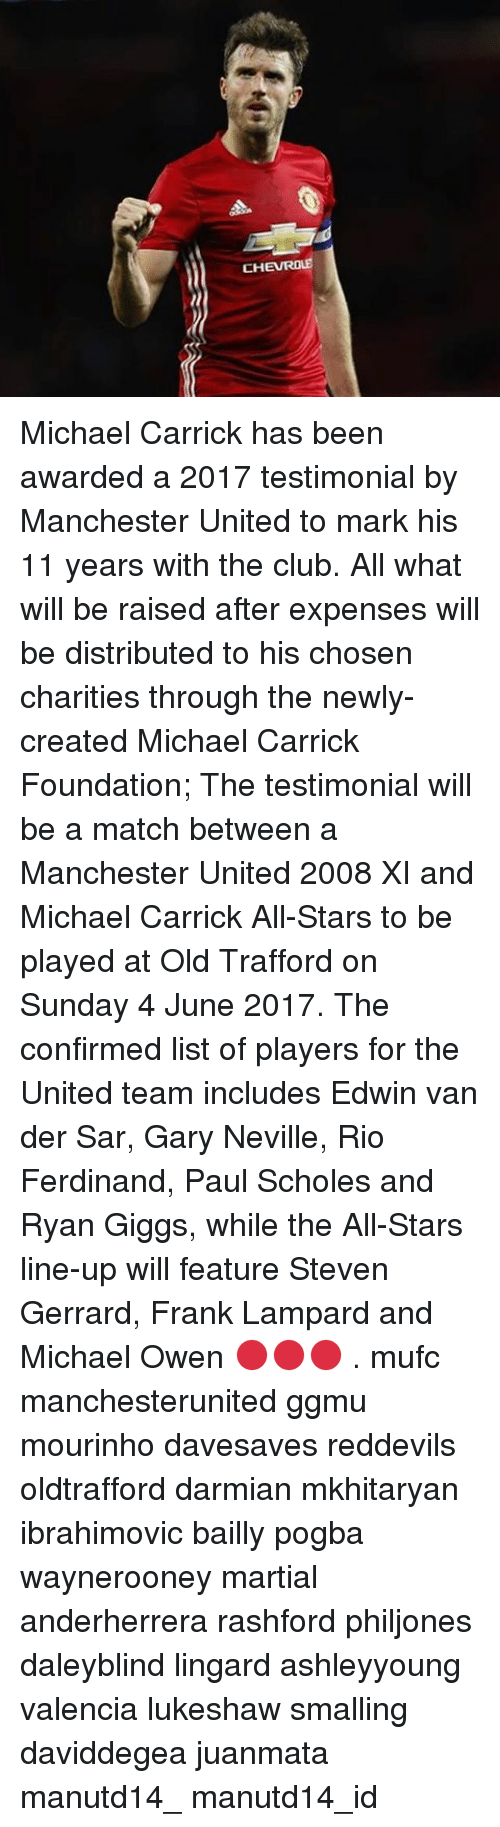 sars: CHE ROLE Michael Carrick has been awarded a 2017 testimonial by Manchester United to mark his 11 years with the club. All what will be raised after expenses will be distributed to his chosen charities through the newly-created Michael Carrick Foundation; The testimonial will be a match between a Manchester United 2008 XI and Michael Carrick All-Stars to be played at Old Trafford on Sunday 4 June 2017. The confirmed list of players for the United team includes Edwin van der Sar, Gary Neville, Rio Ferdinand, Paul Scholes and Ryan Giggs, while the All-Stars line-up will feature Steven Gerrard, Frank Lampard and Michael Owen 🔴🔴🔴 . mufc manchesterunited ggmu mourinho davesaves reddevils oldtrafford darmian mkhitaryan ibrahimovic bailly pogba waynerooney martial anderherrera rashford philjones daleyblind lingard ashleyyoung valencia lukeshaw smalling daviddegea juanmata manutd14_ manutd14_id